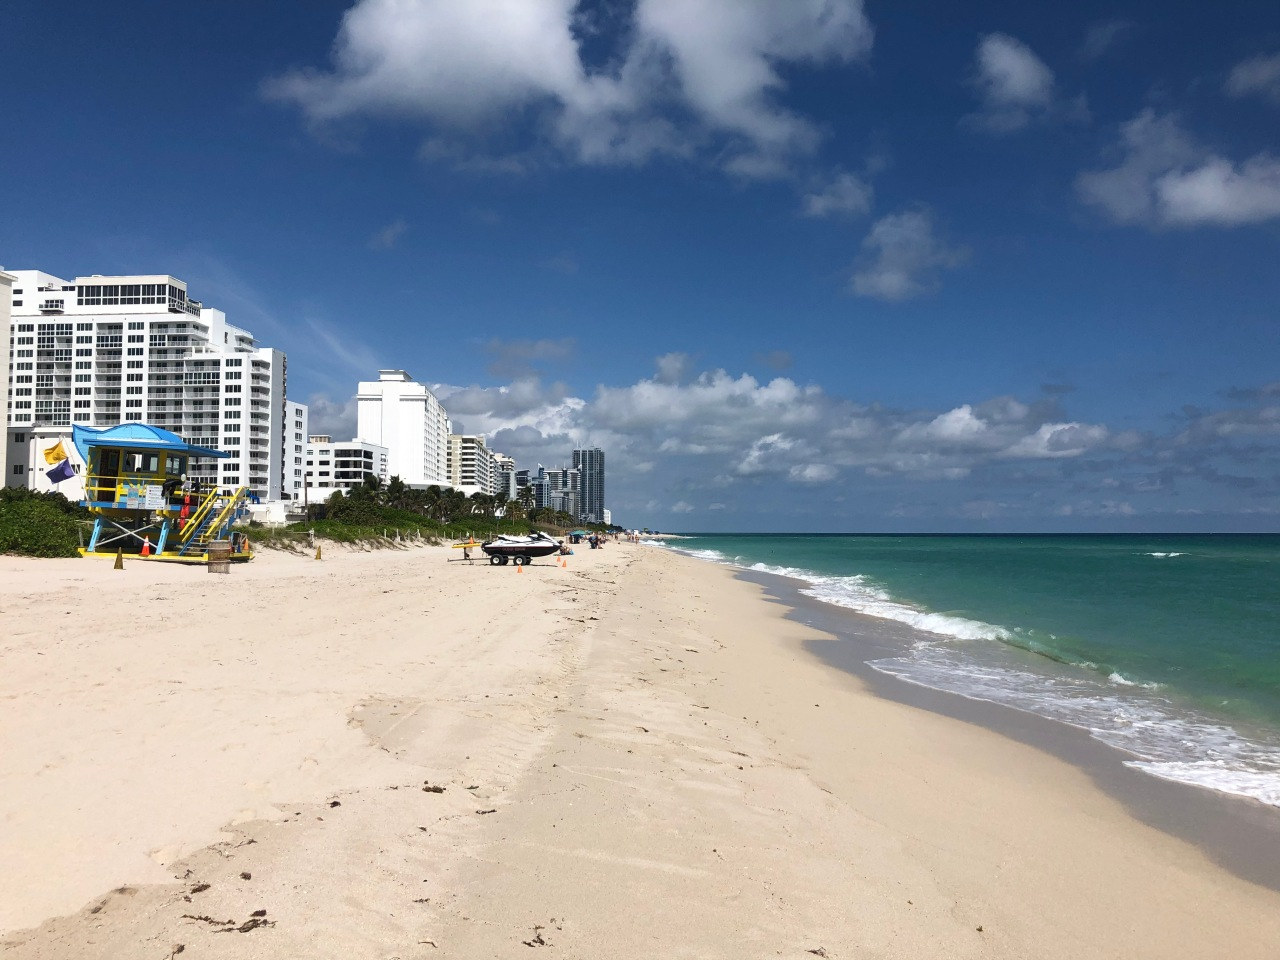 South Beach, Miami dreaming!